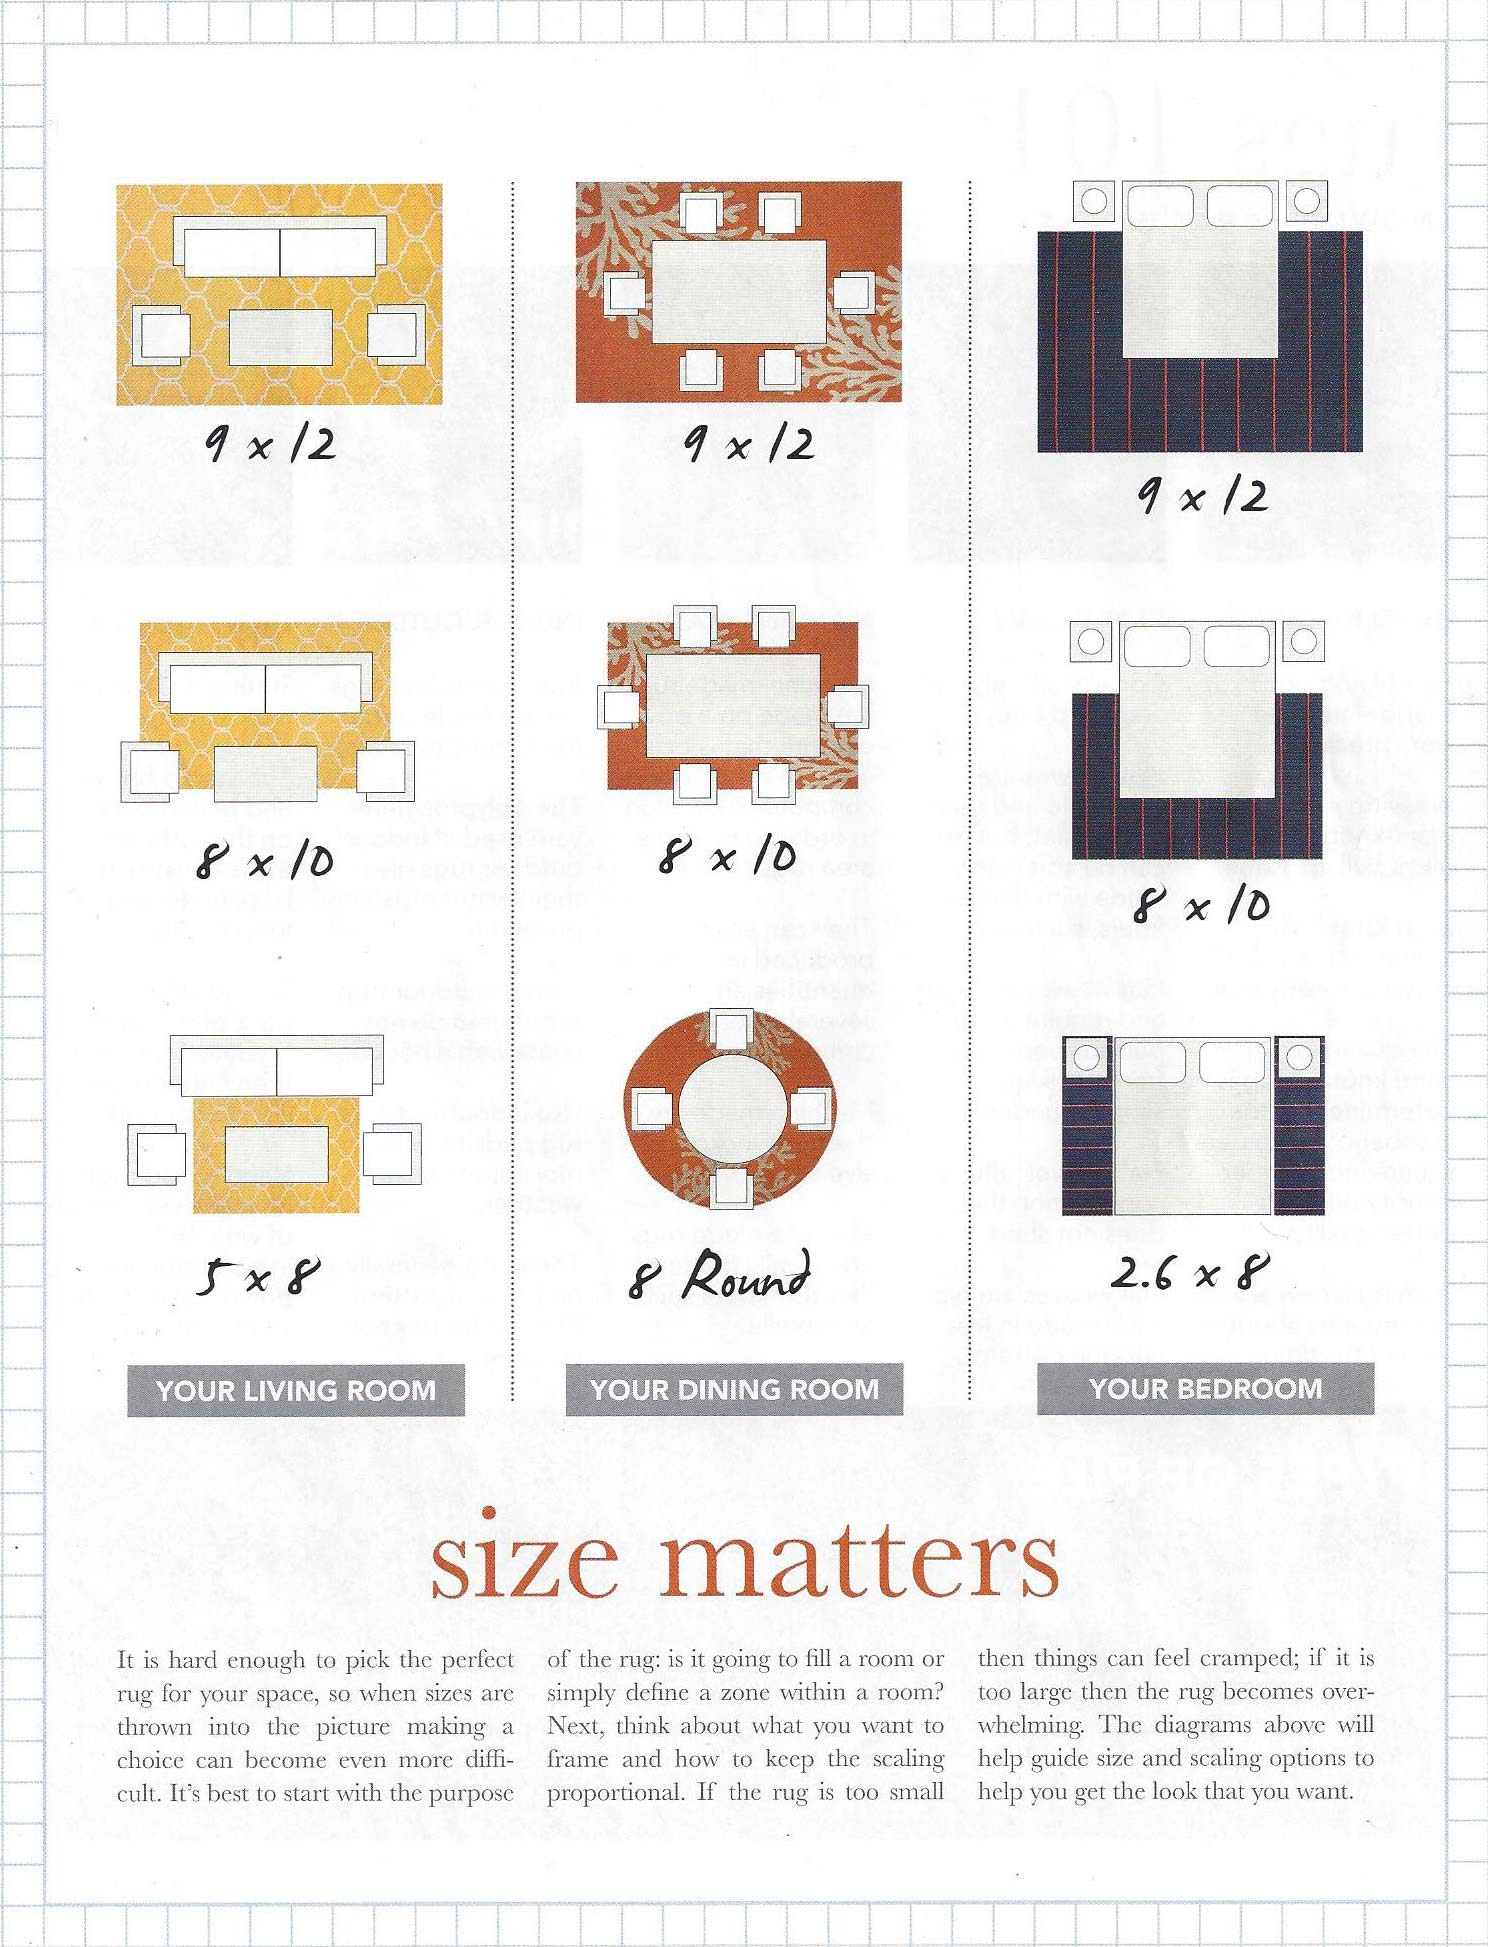 At Harry King We Let You Take Home Different Sizes To Try Out. Here Is A  General Floor Layout For Living Room ...